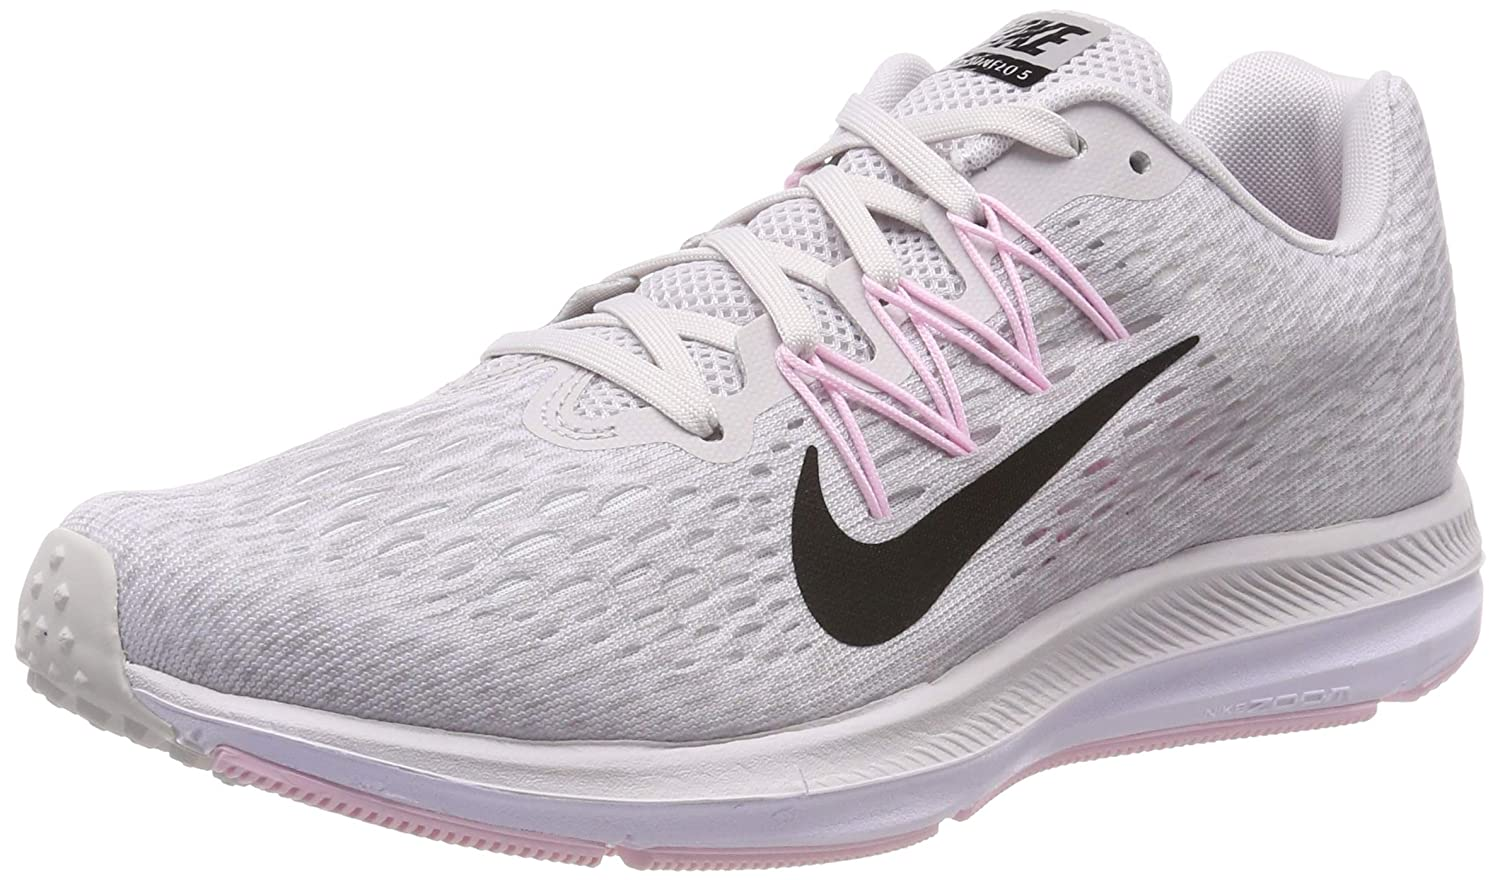 Nike Women\u0027s Air Zoom Winflo 5 Running Shoes